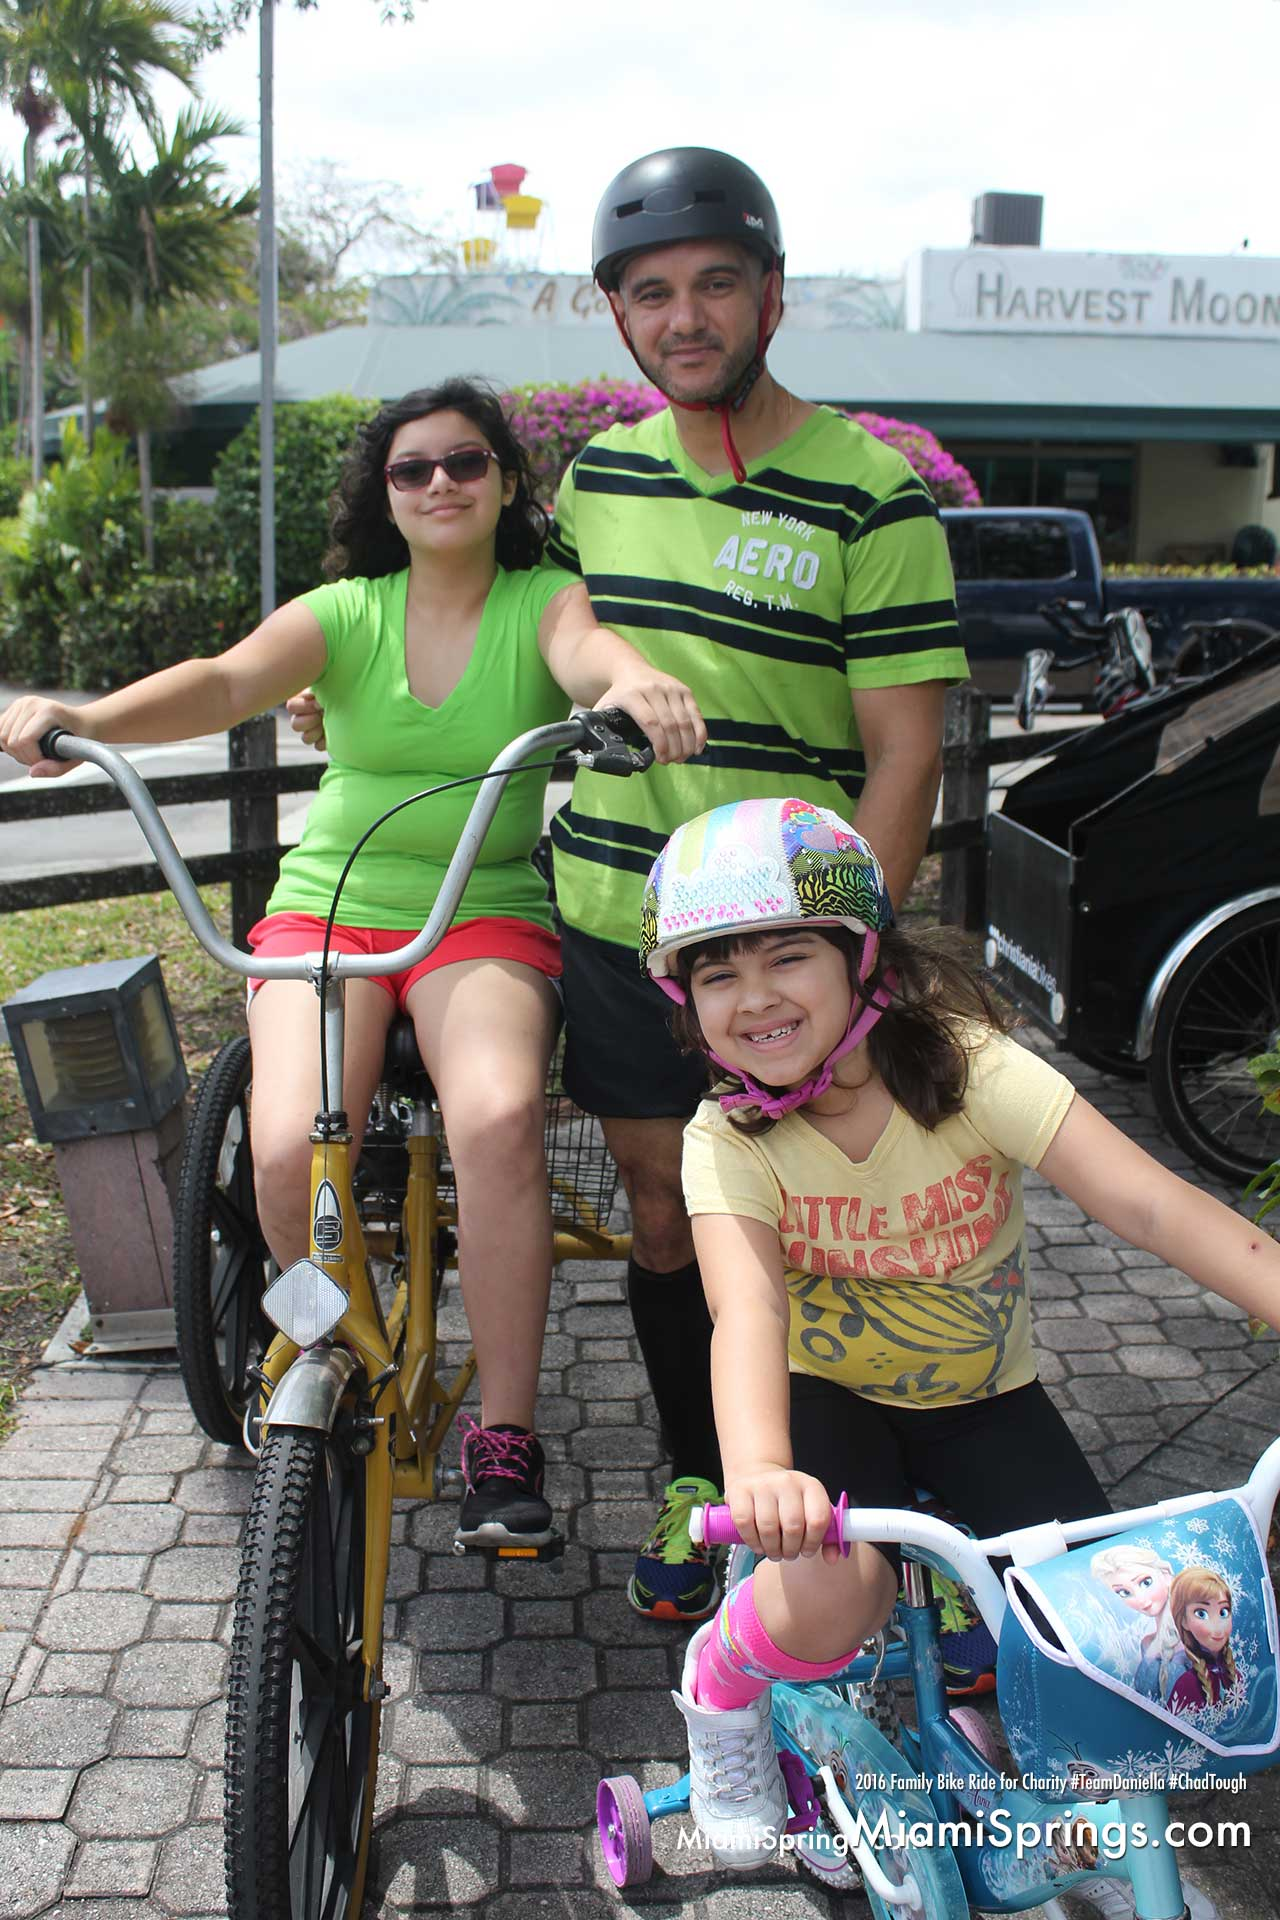 The 2nd Annual Miami Springs Family Bike Ride for Charity loves theses family smiles